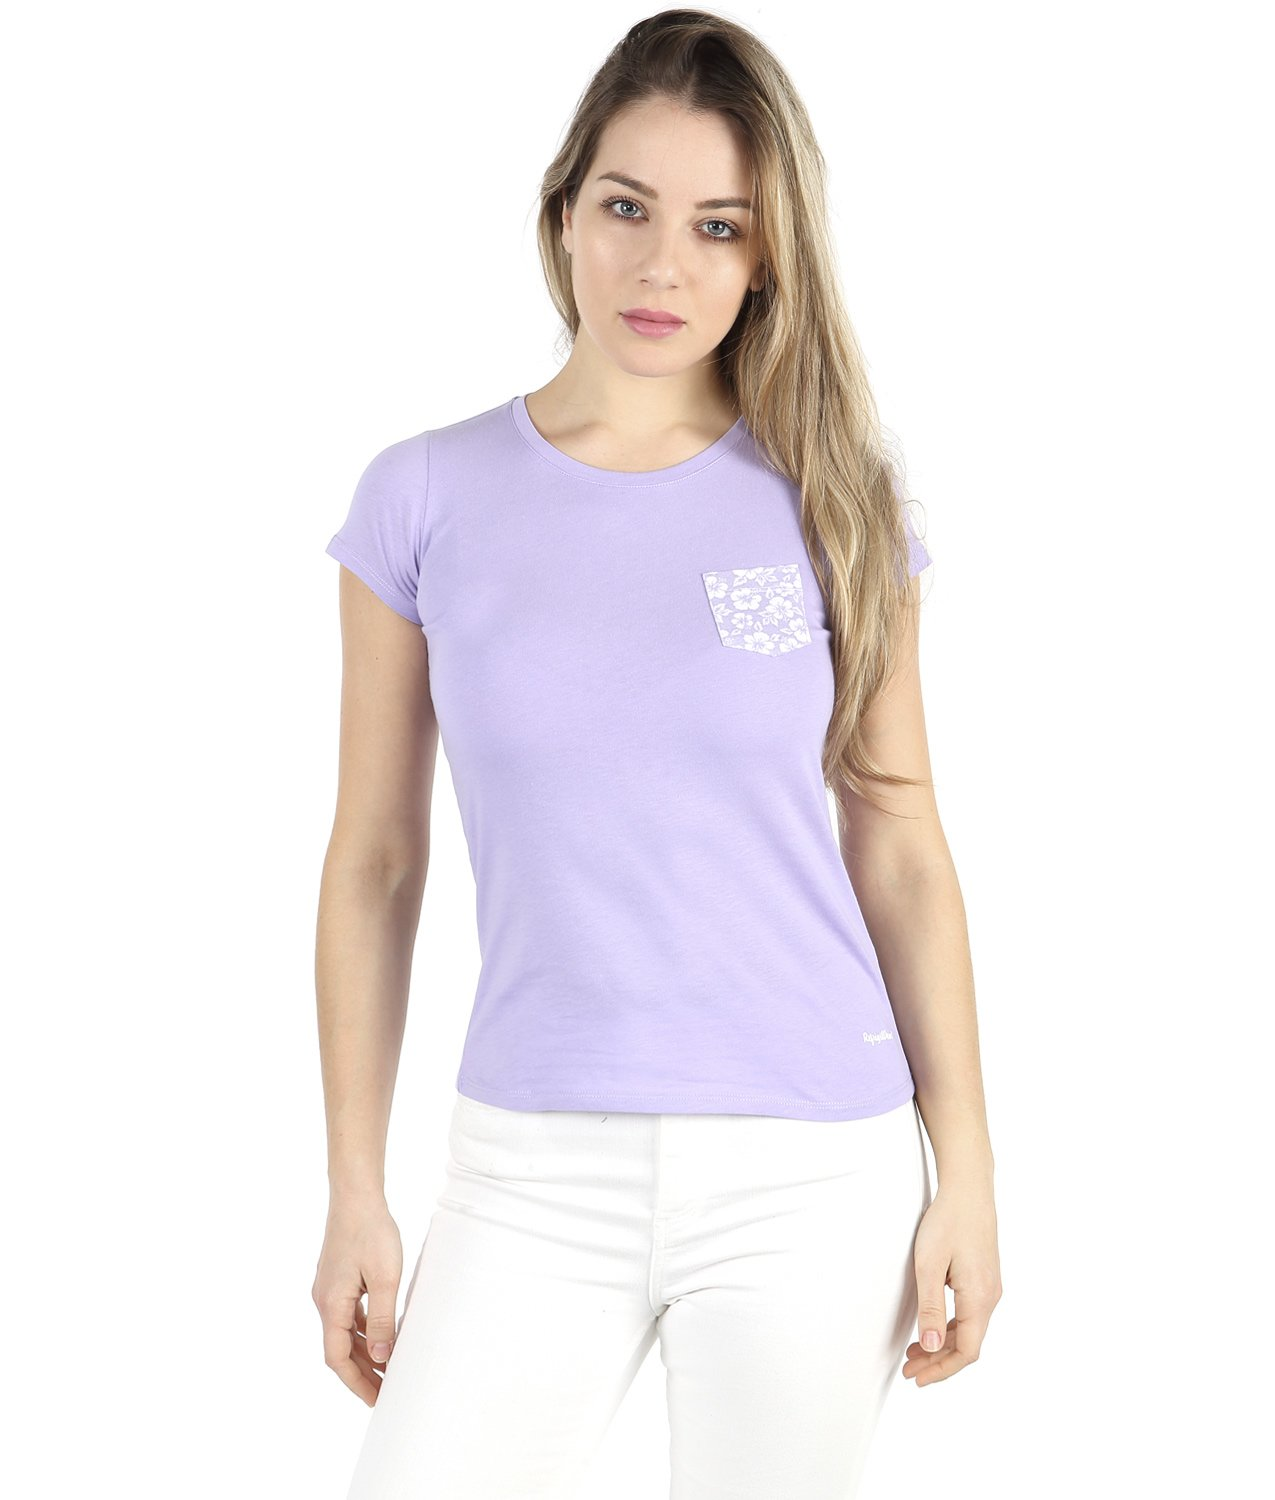 BEACON T-SHIRT